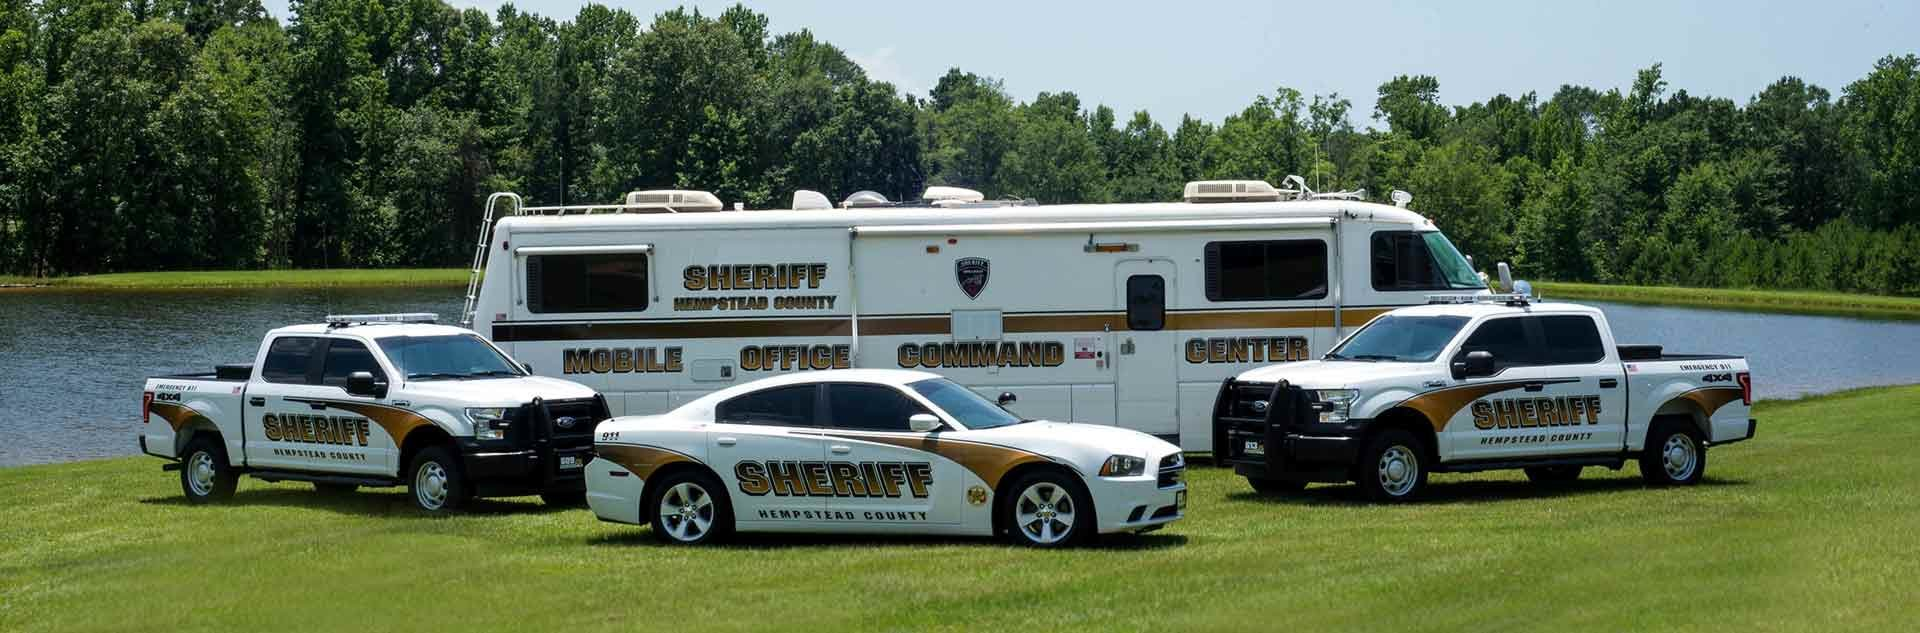 Sheriff Vehicles and Mobile Command Center